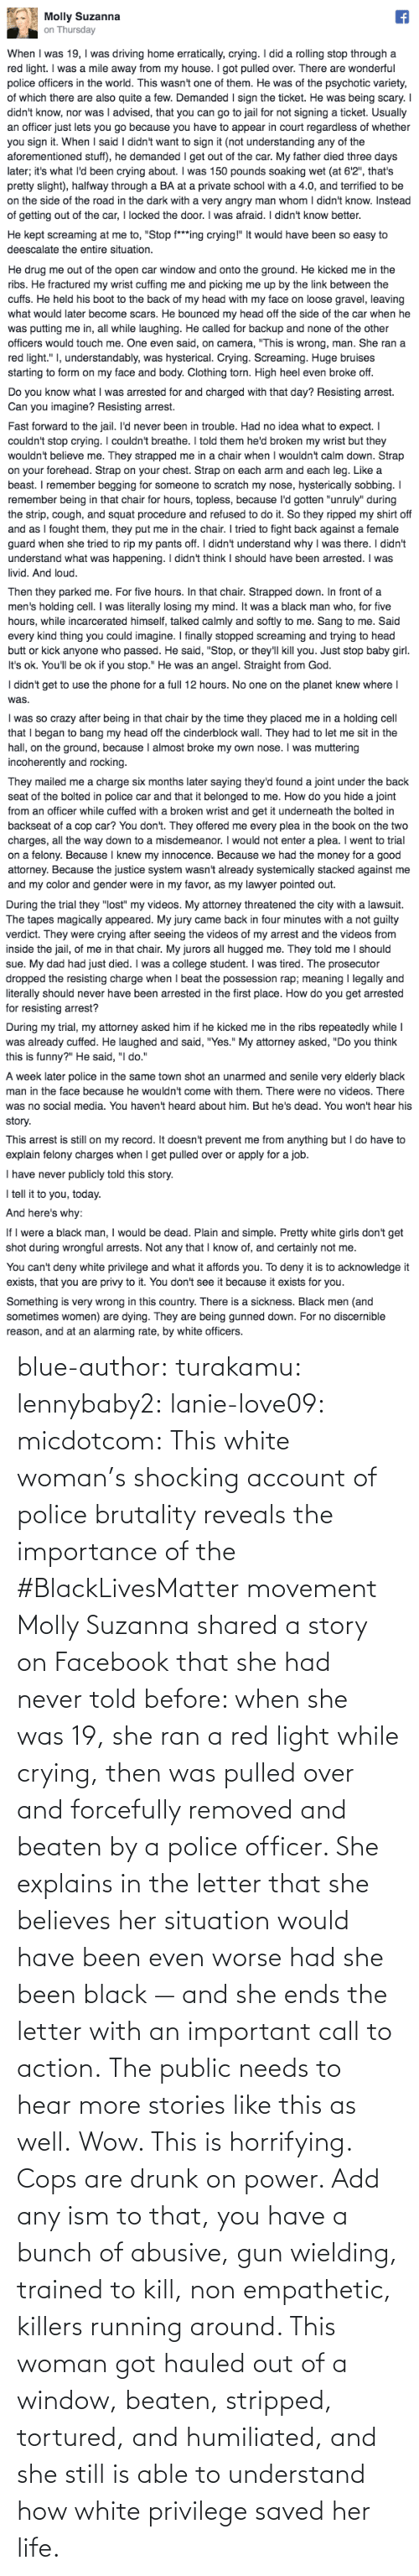 Running: blue-author: turakamu:  lennybaby2:  lanie-love09:  micdotcom:  This white woman's shocking account of police brutality reveals the importance of the #BlackLivesMatter movement Molly Suzanna shared a story on Facebook that she had never told before: when she was 19, she ran a red light while crying, then was pulled over and forcefully removed and beaten by a police officer. She explains in the letter that she believes her situation would have been even worse had she been black — and she ends the letter with an important call to action.  The public needs to hear more stories like this as well.  Wow. This is horrifying.  Cops are drunk on power. Add any ism to that, you have a bunch of abusive, gun wielding, trained to kill, non empathetic, killers running around.    This woman got hauled out of a window, beaten, stripped, tortured, and humiliated, and she still is able to understand how white privilege saved her life.